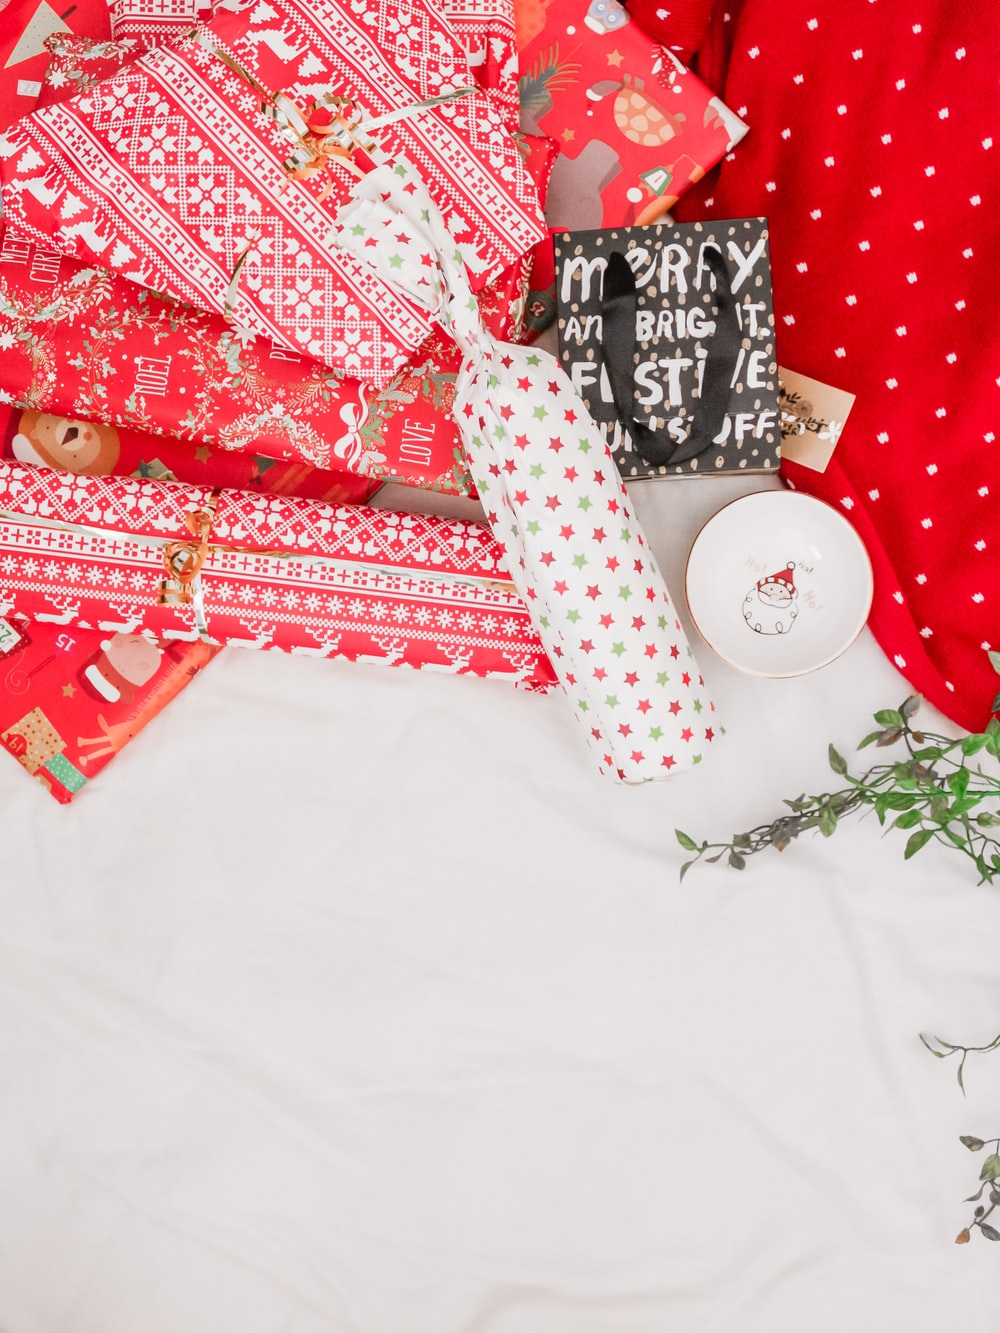 red gift wrapped presents